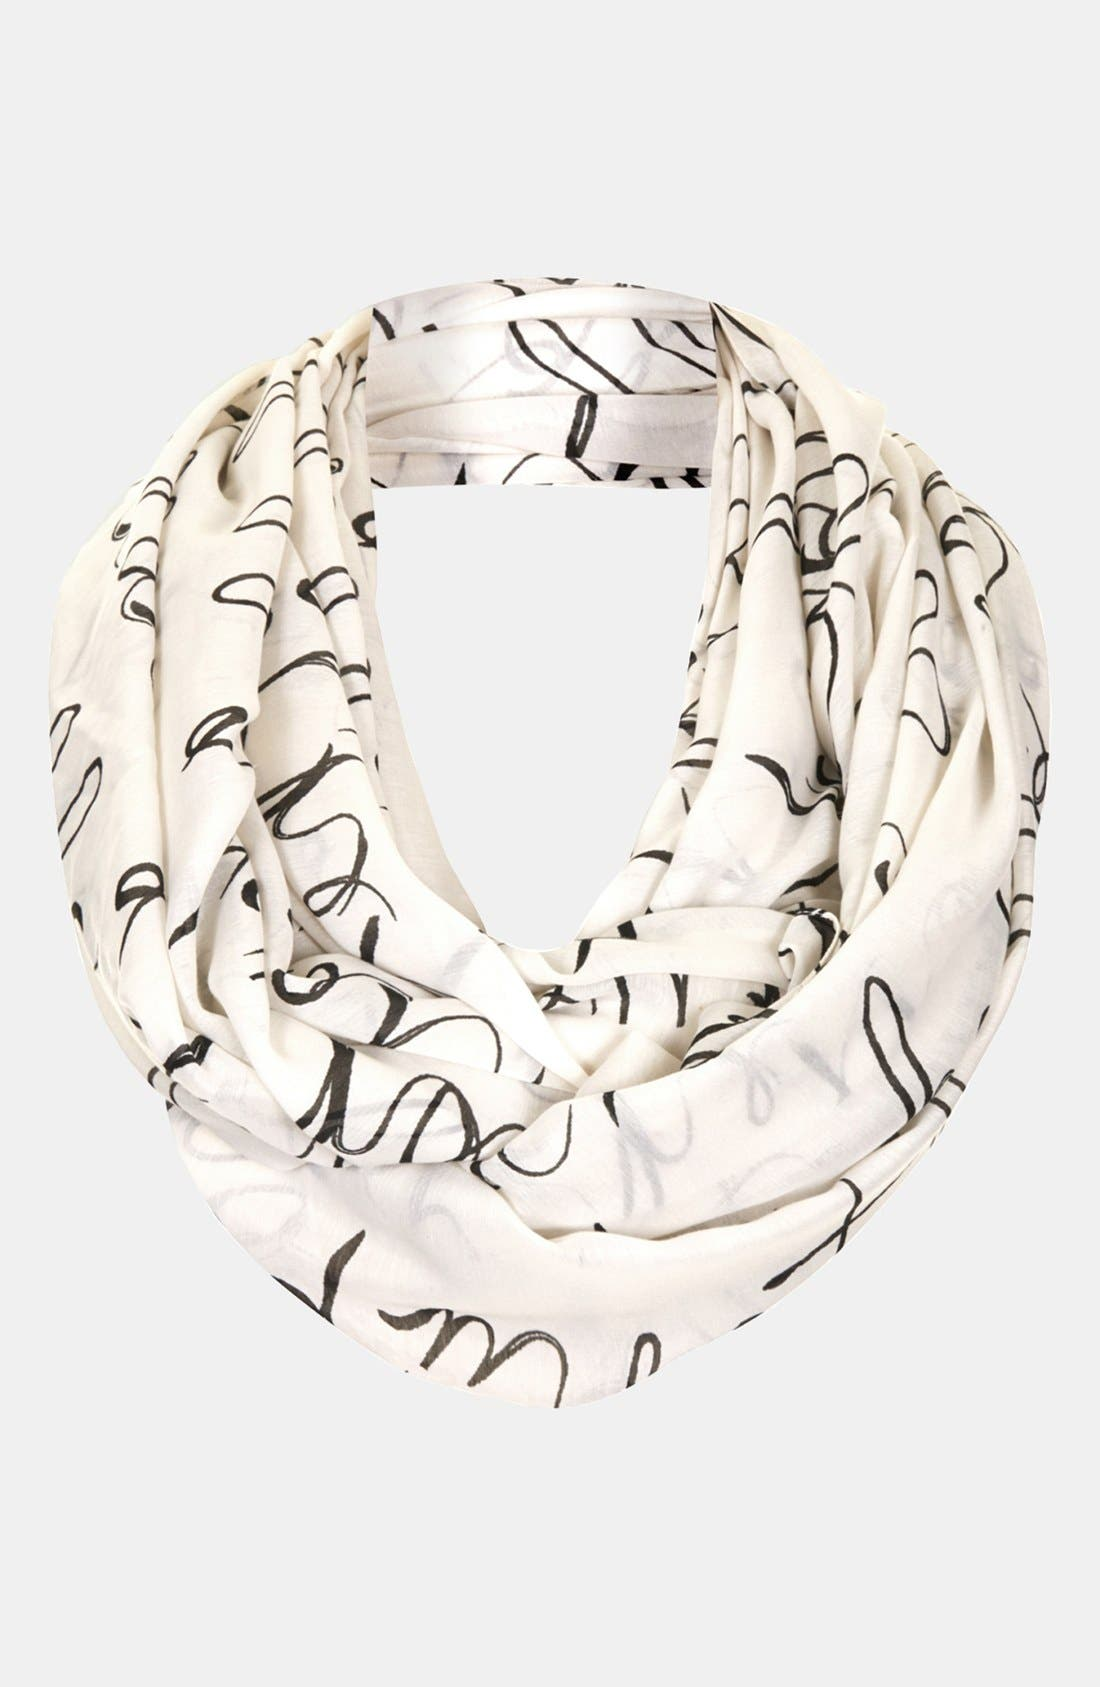 Alternate Image 1 Selected - Topshop 'Hello Poem' Infinity Scarf